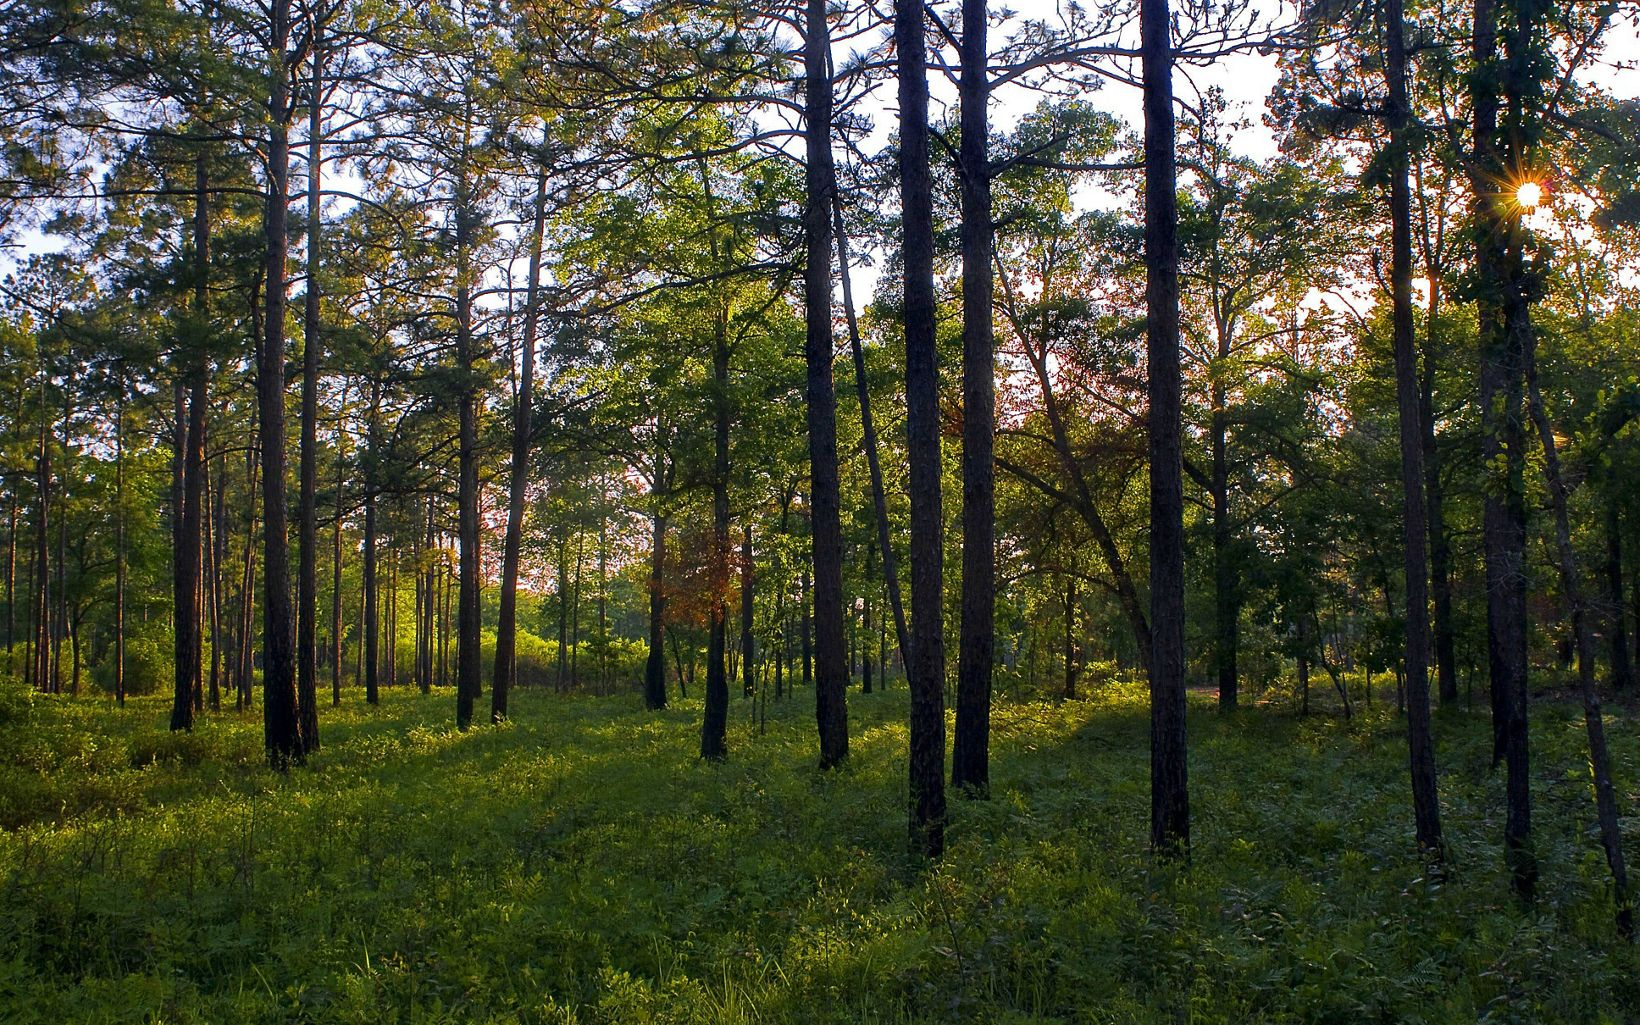 Mixed longleaf pine flatwoods at TNC's Williams Bluffs Preserve in Early County, Georgia.